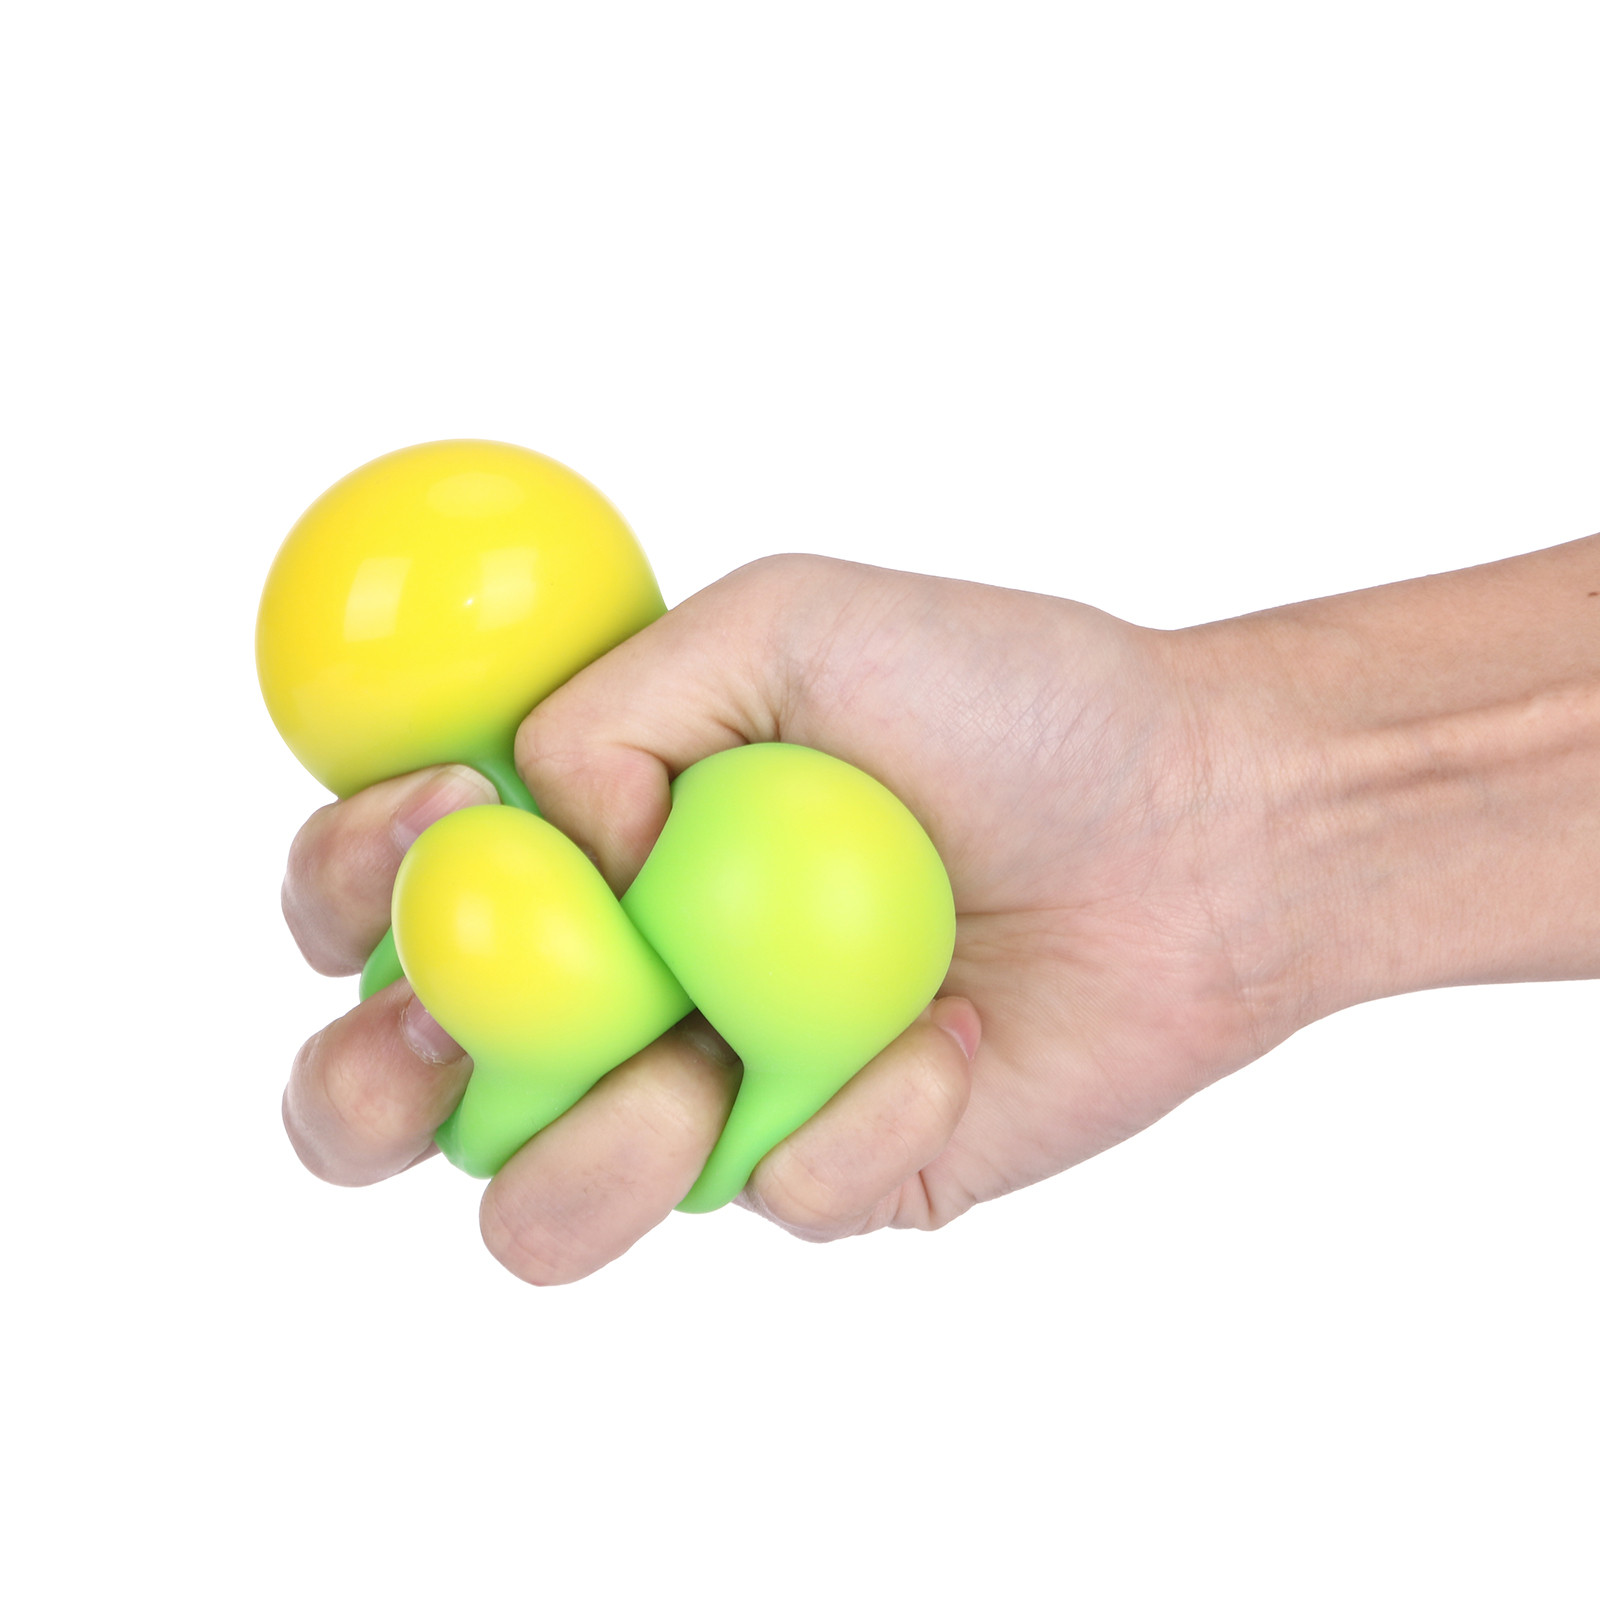 Clear Stress Balls Colorful Ball Autism Mood Squeeze Relief Healthy Toy Funny Gadget Vent Toy Children Christmas Gift 2021 img4